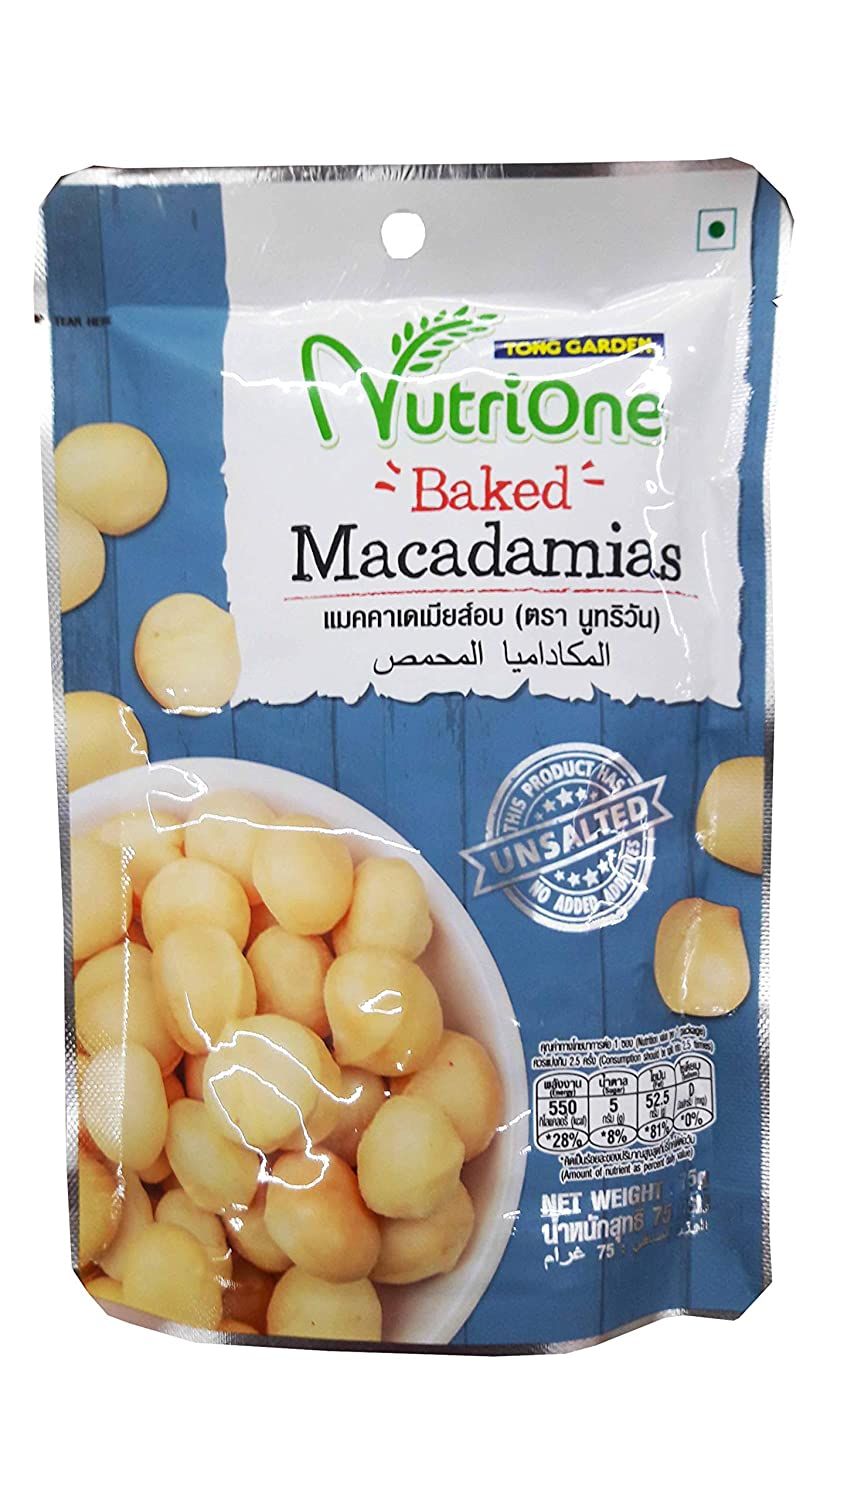 Tong Garden, 2 Packs of Baked Macadamias, Premium grade snack by Nutrione Tong garden. Unsalted, This product has no added additives (75 g/pack).